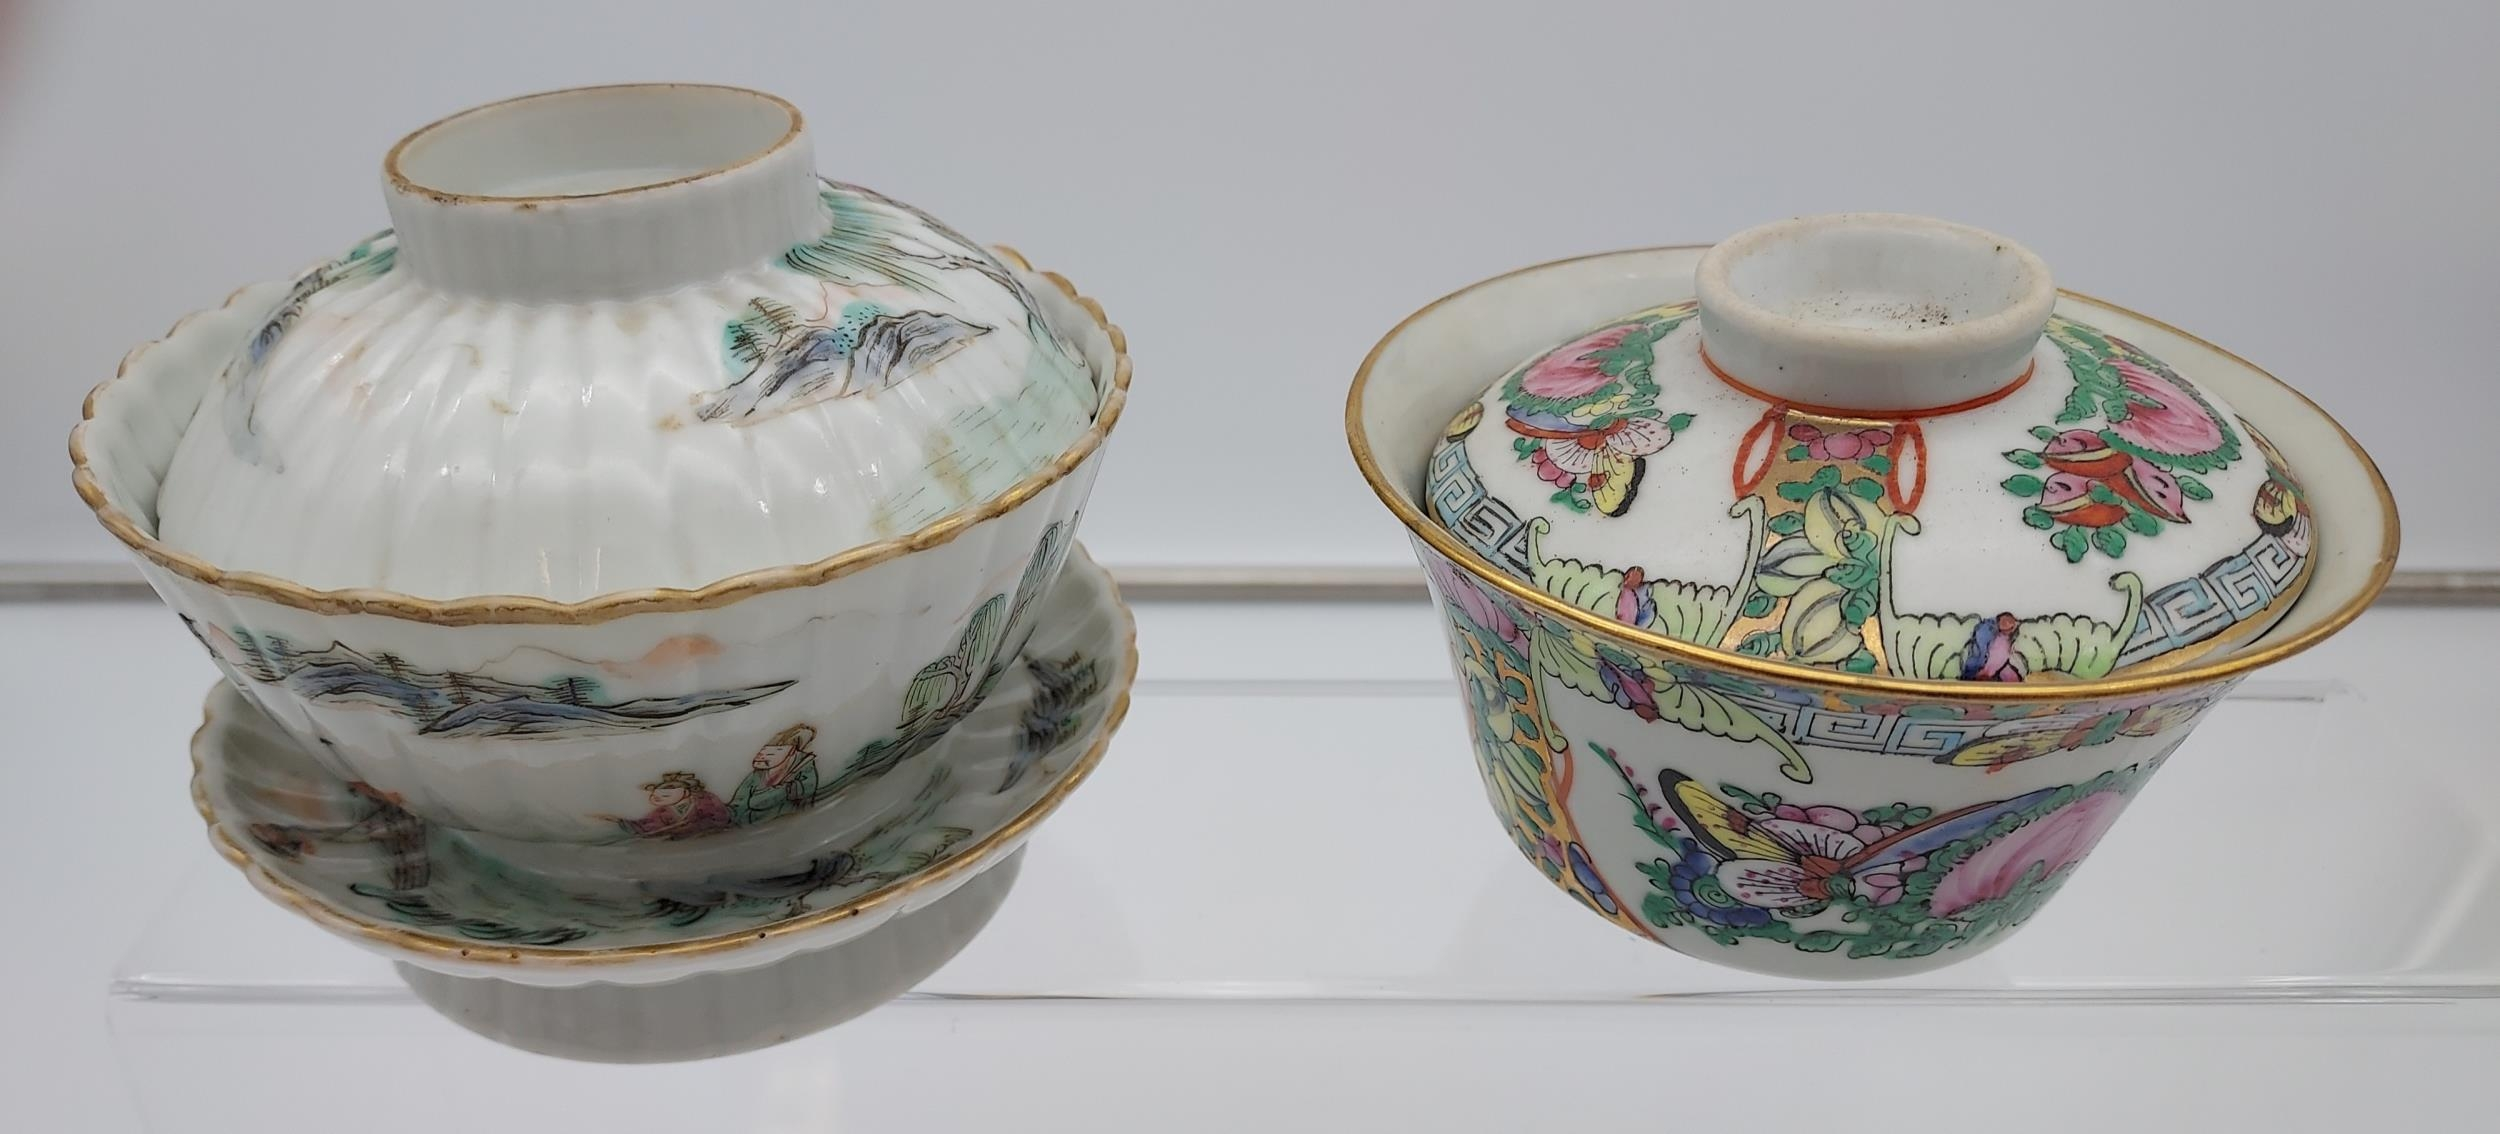 An Antique Chinese Daoguang 1821-50 tea cup, stand and lid. Hand painted with various fishing